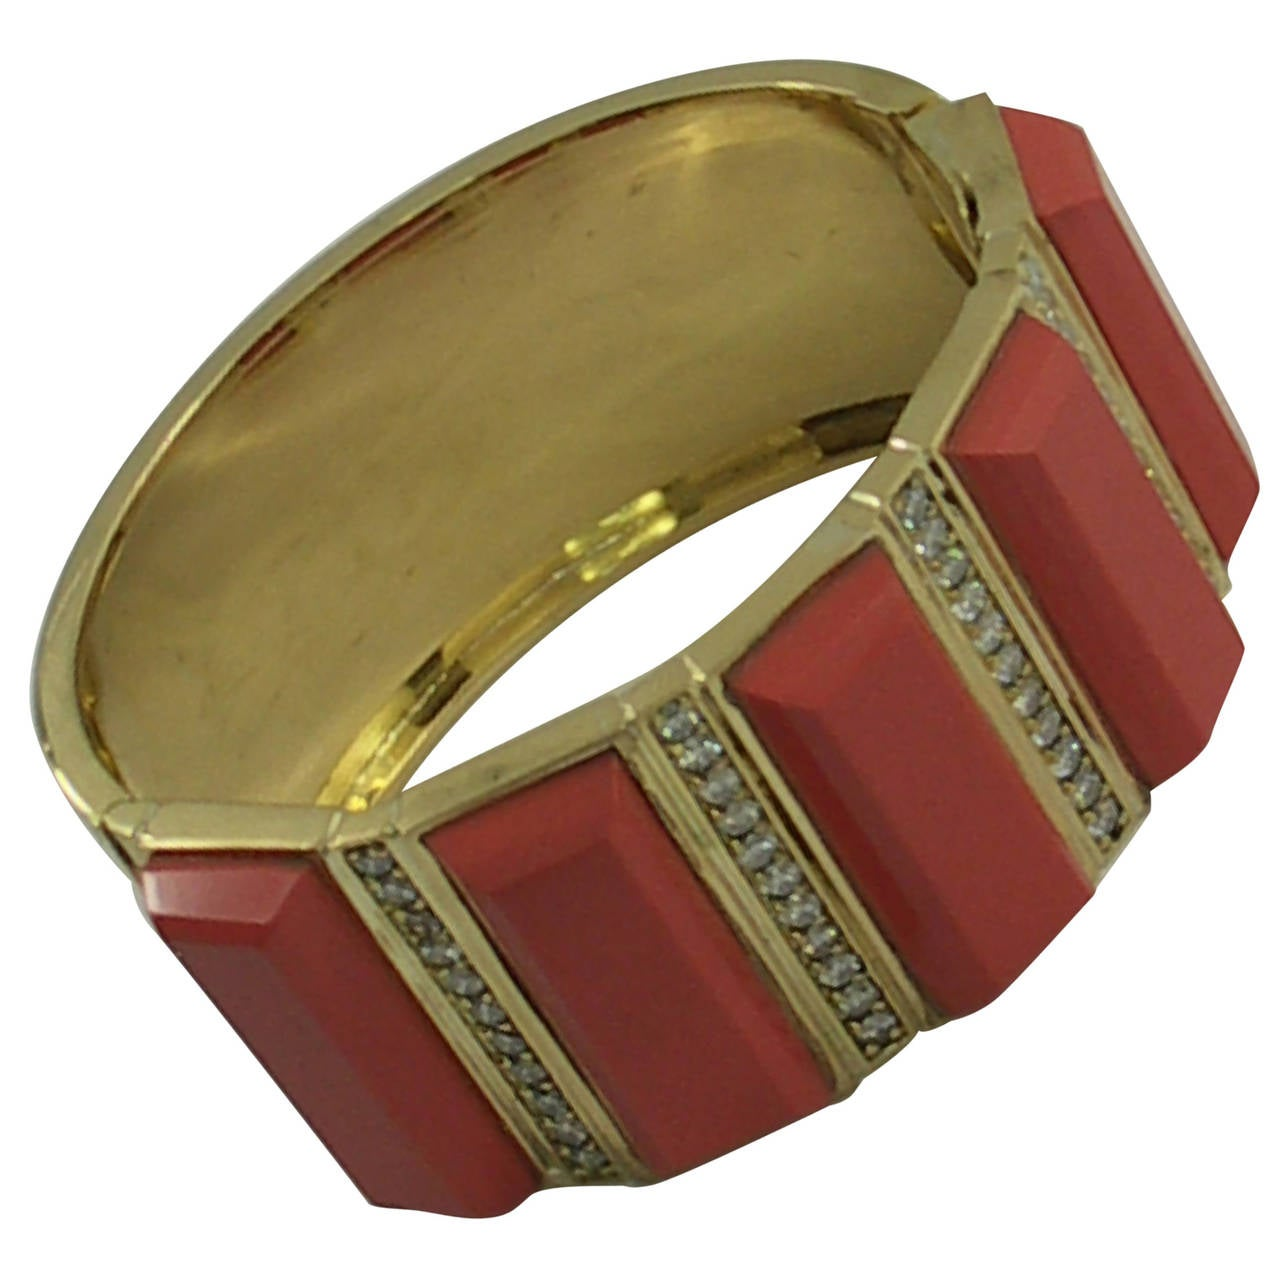 Gold Cuff Bracelet with Coral Colored Slabs and Diamonds